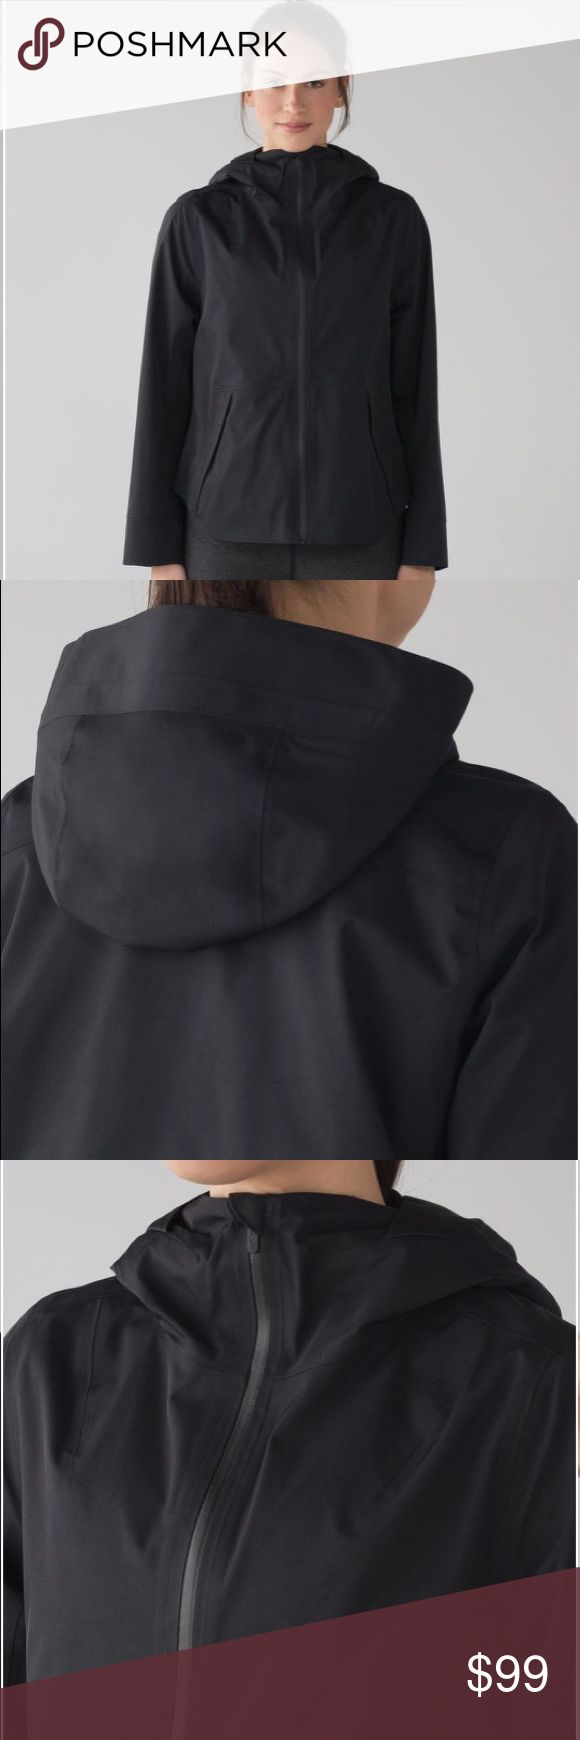 Lululemon Everyday Getaway Jacket in Black Transition into spring in this waterproof jacket designed with room to layer underneath.  Glyde Waterproof fabric is breathable and jacket is strategically seam-sealed to keep moisture out.  Designed for: To + from Cinchable hood: To maintain peripheral vision Storage: Zippered pockets and one media pocket stash your phone and essentials  Color is Black, size 4 - true to size. Item is in excellent condition. lululemon athletica Jackets & Coats…